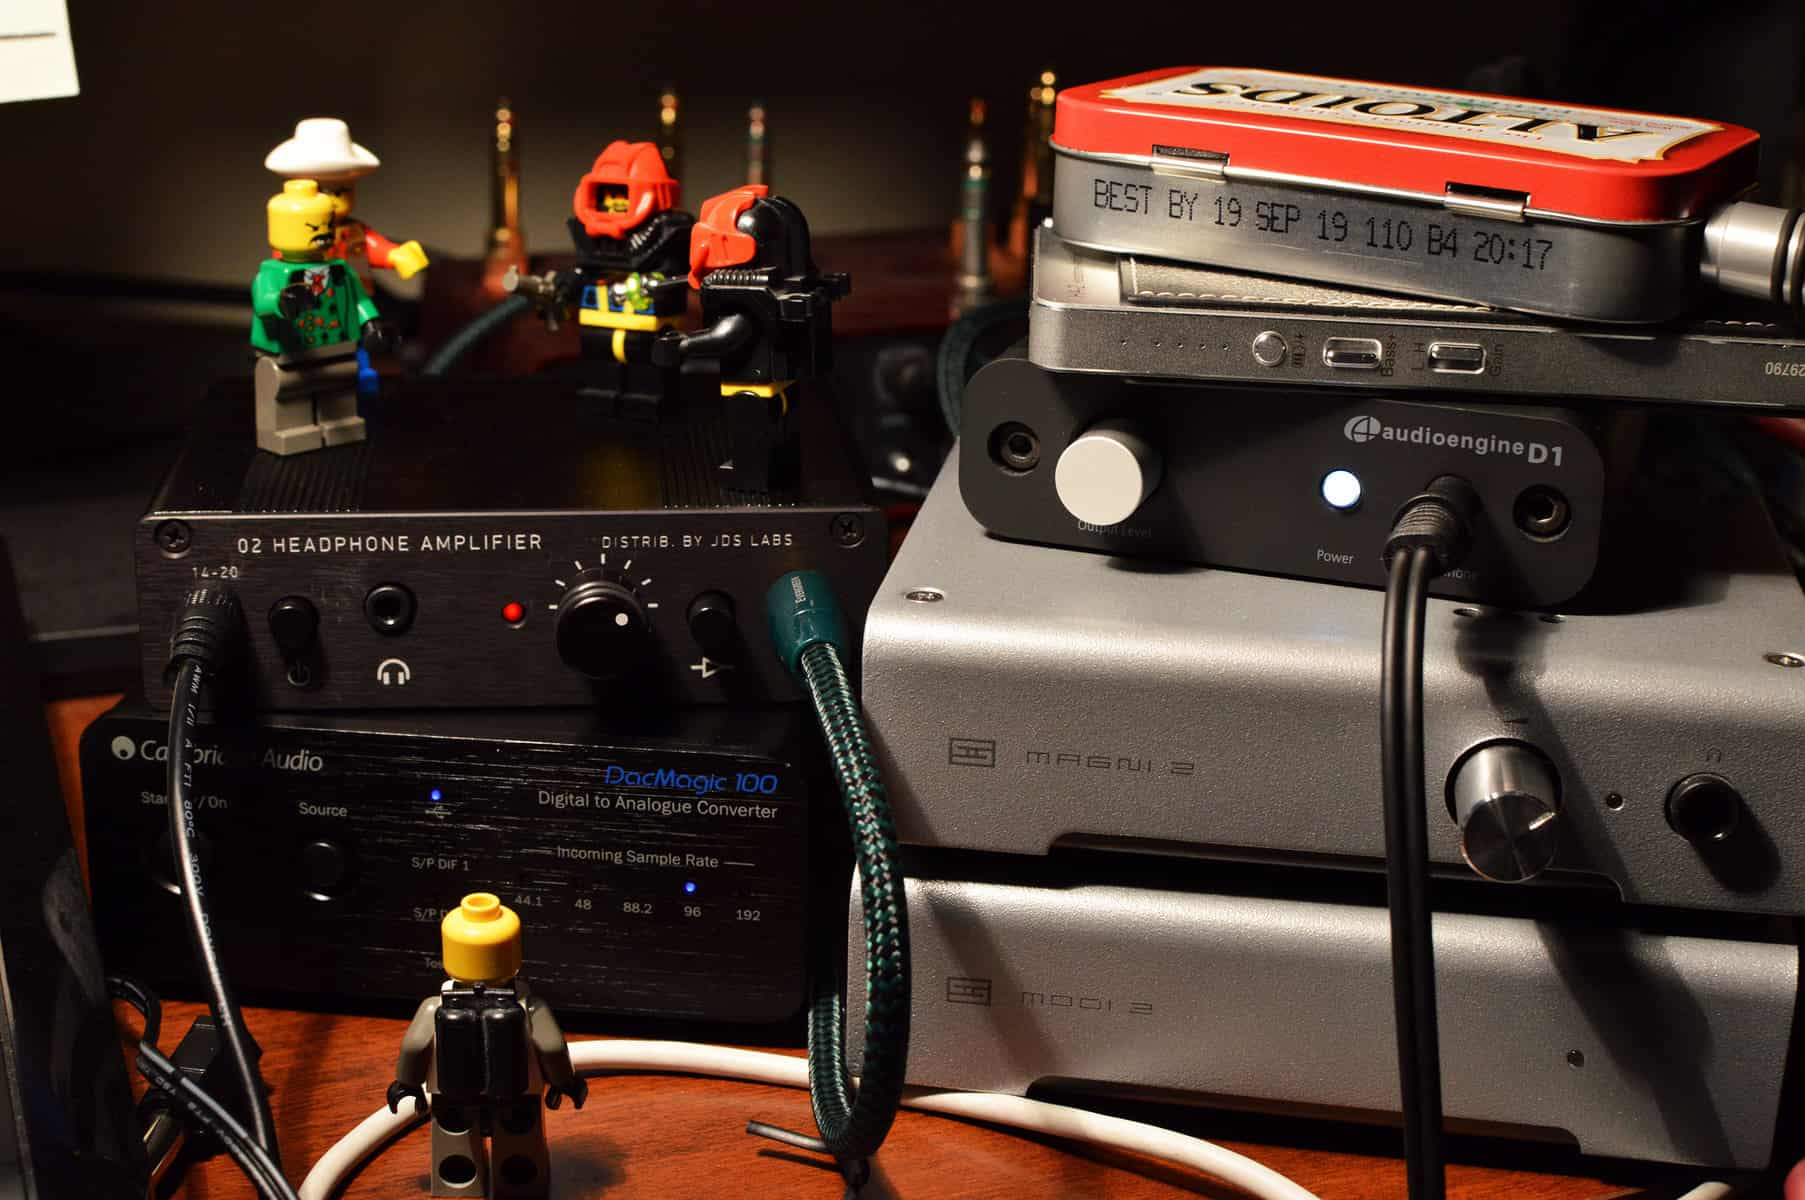 The Jds Labs Objective 2 Headphone Amp Mr Clean Of Amps 30mw True Ground Class G Amplifier With Volume Control Here I Was Comparing Audioengine D1 This Time Pairing It A Dac Magic 100